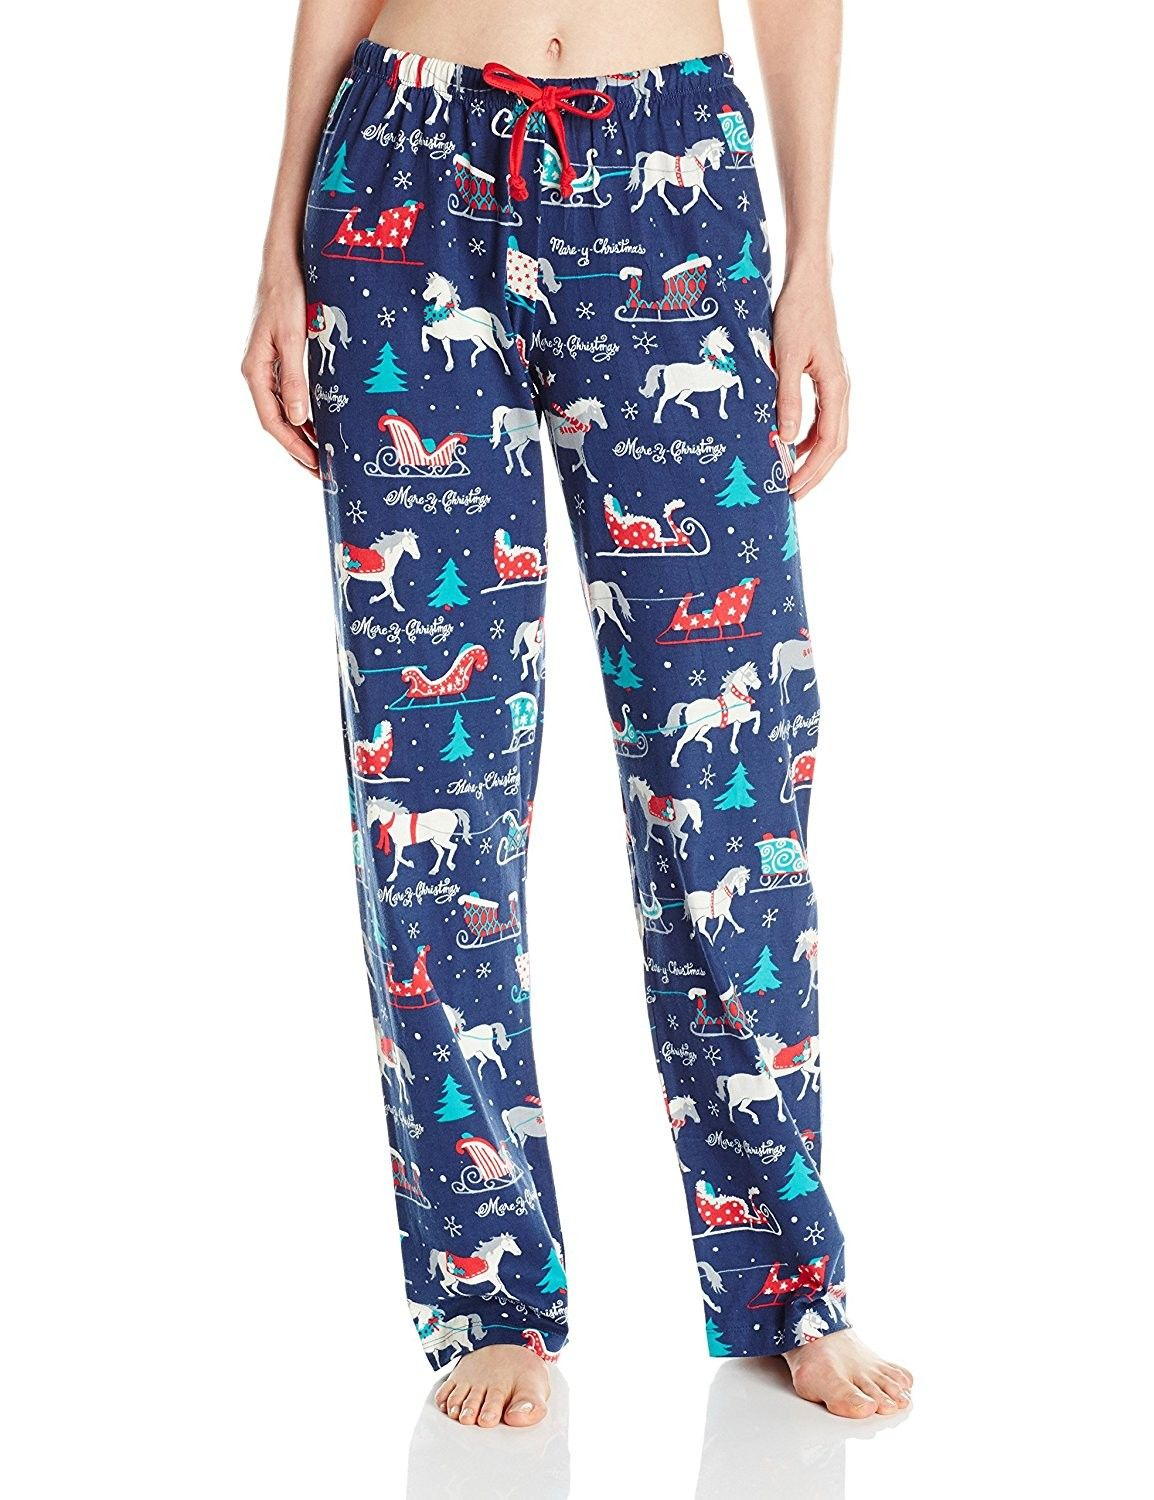 7505ebd950 Women s Holiday Jersey Pajama Pants - Sledding Horses - C5125KXQ2PZ ...